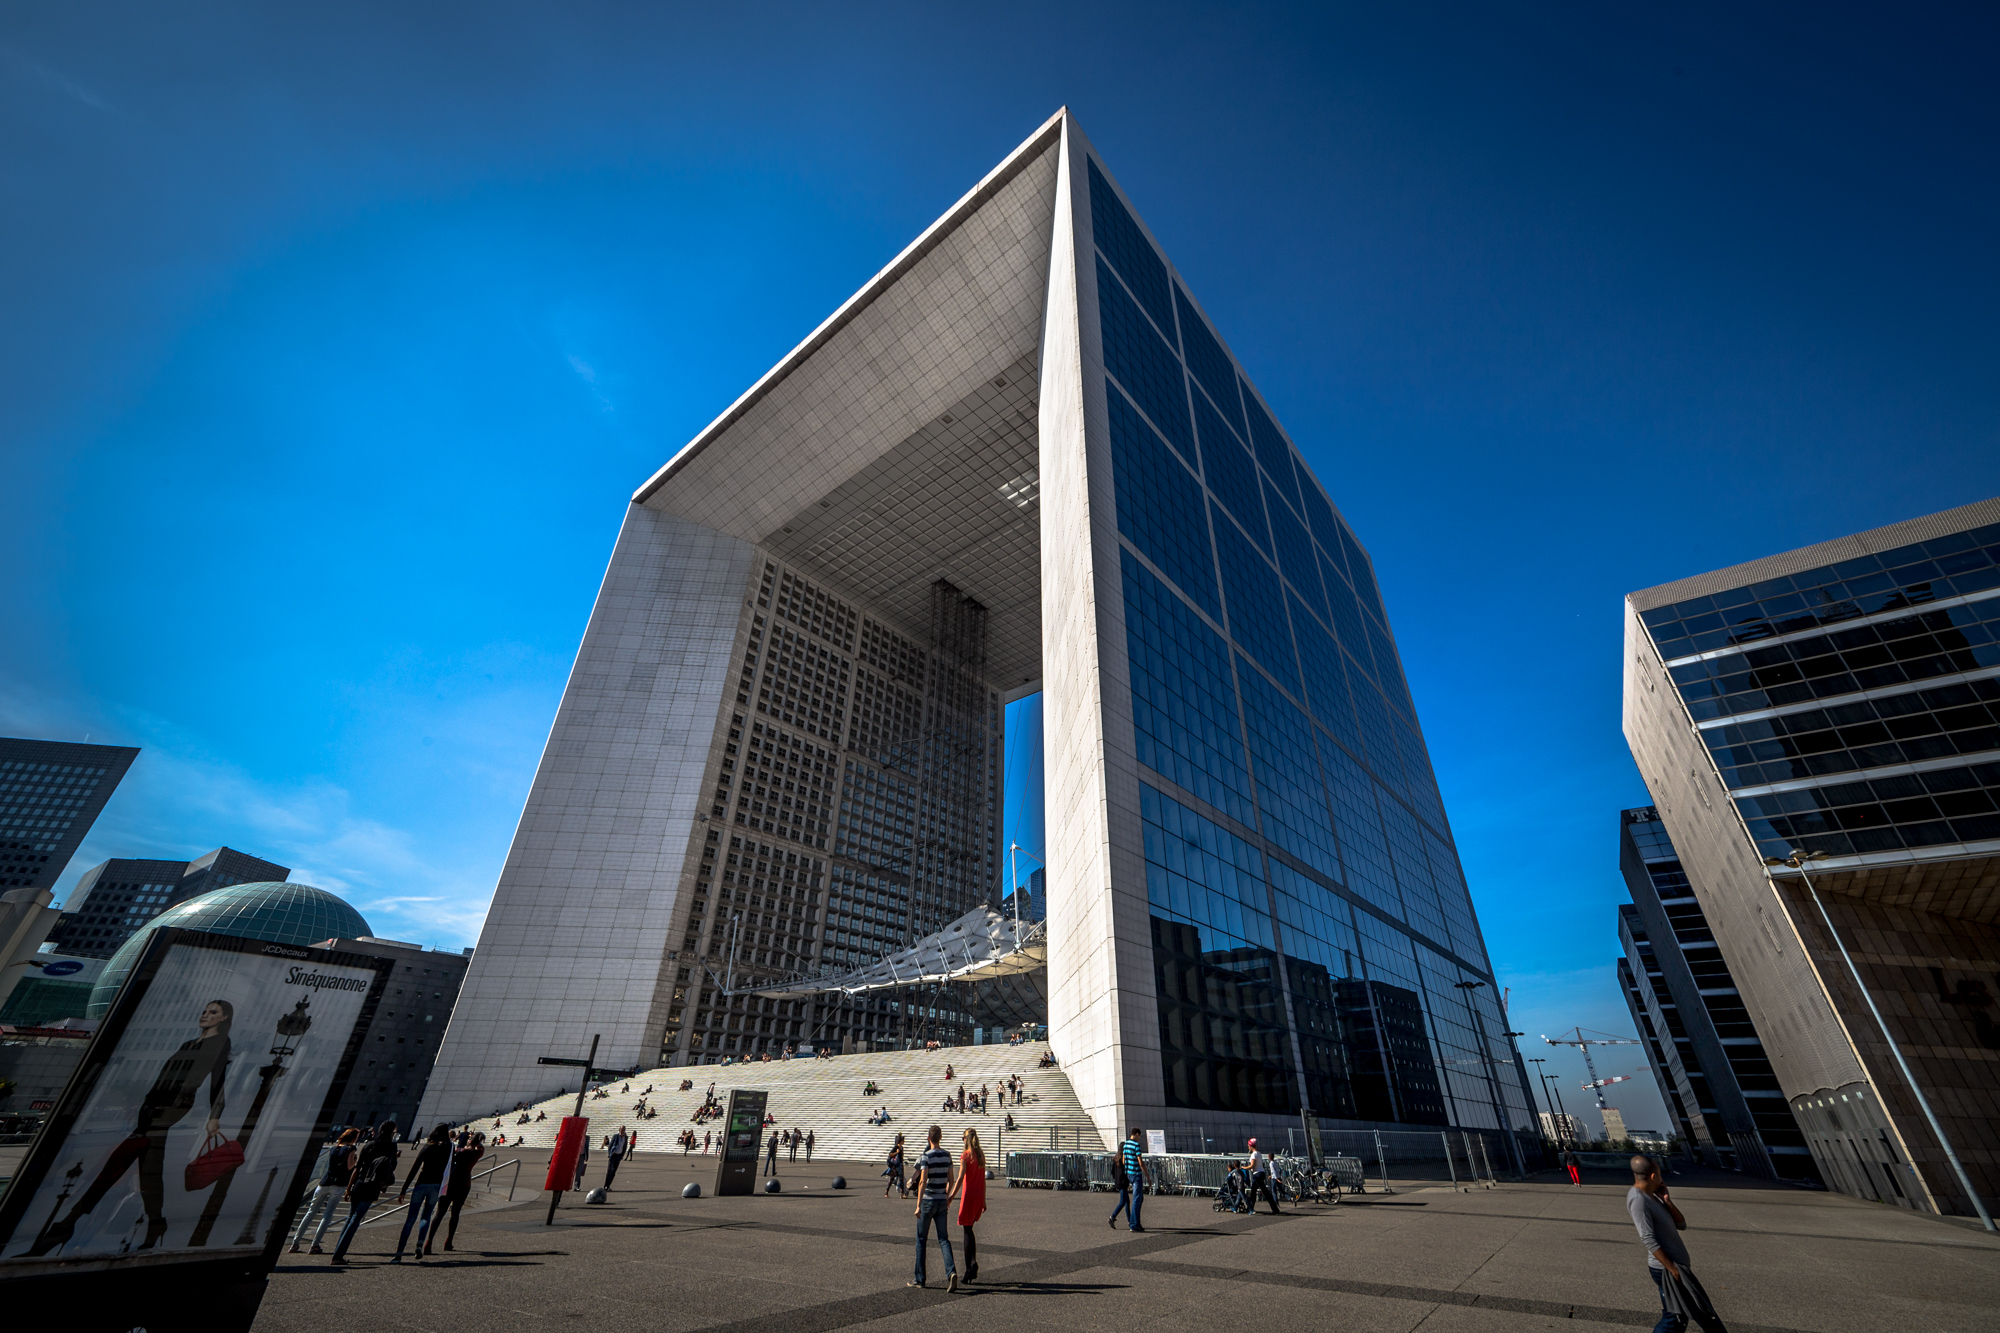 La Grande Arche de la Défense, Paris by Darwin. Taken with a Canon 6D and Rokinon 14mm f/2.8